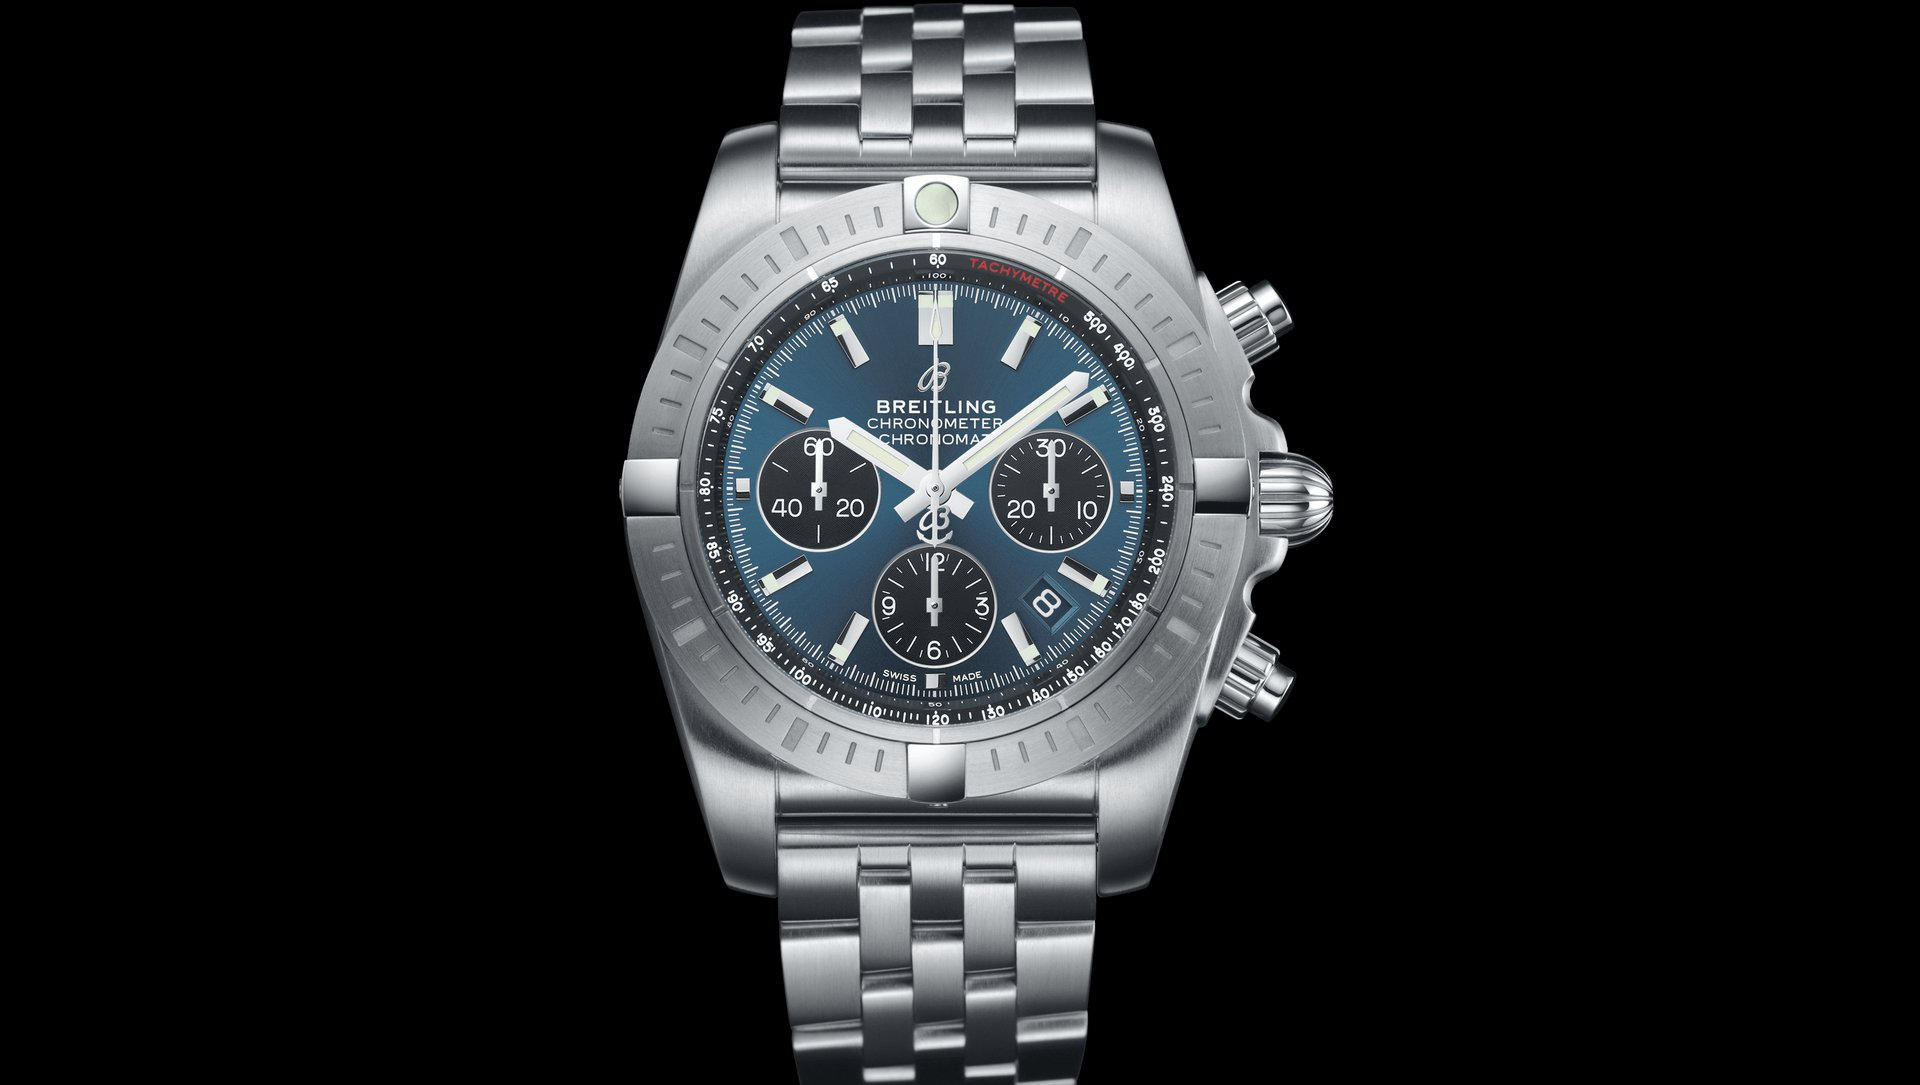 Breitling Chronomat B01 44 Chronograph with Blackeye Blue dial (Image: Breitling)